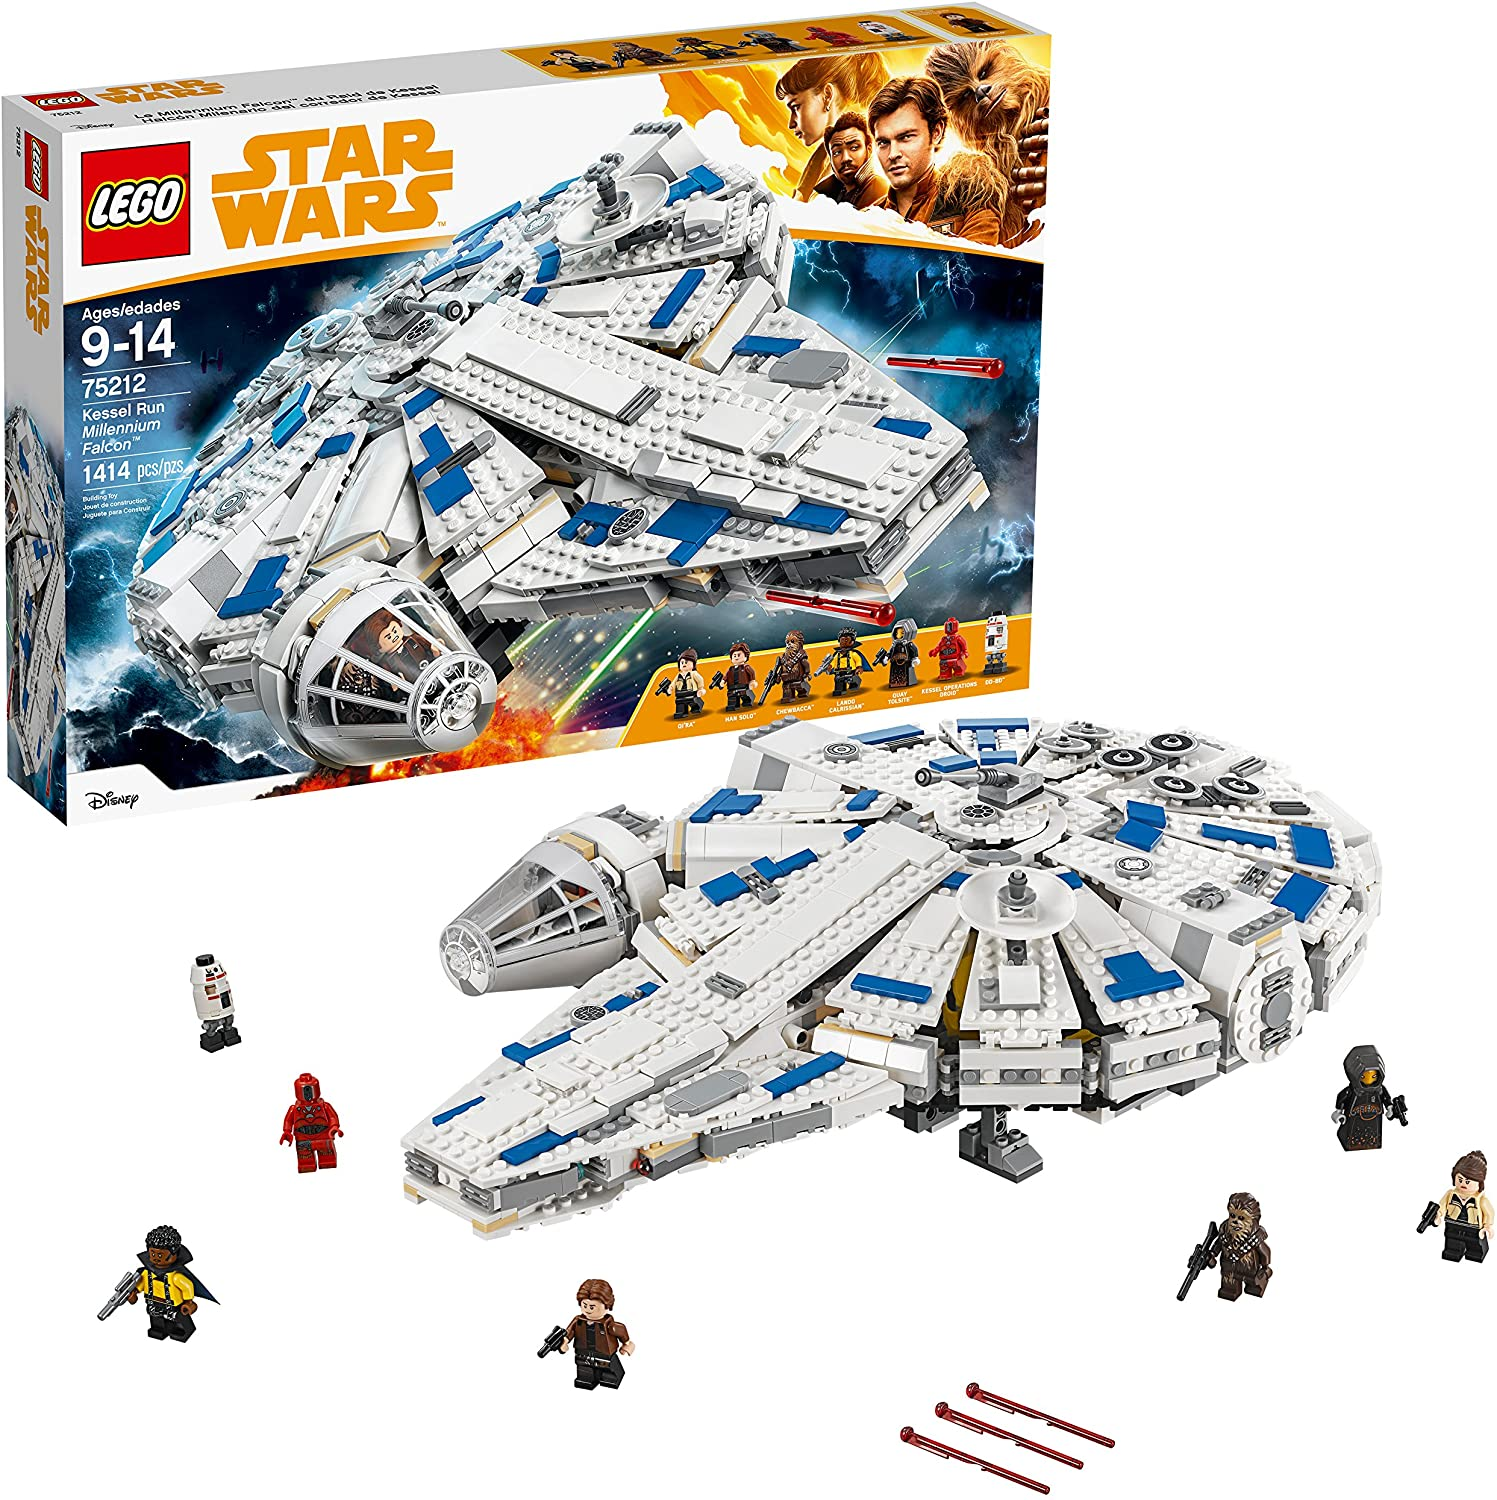 Lego Star Wars Sets Solo